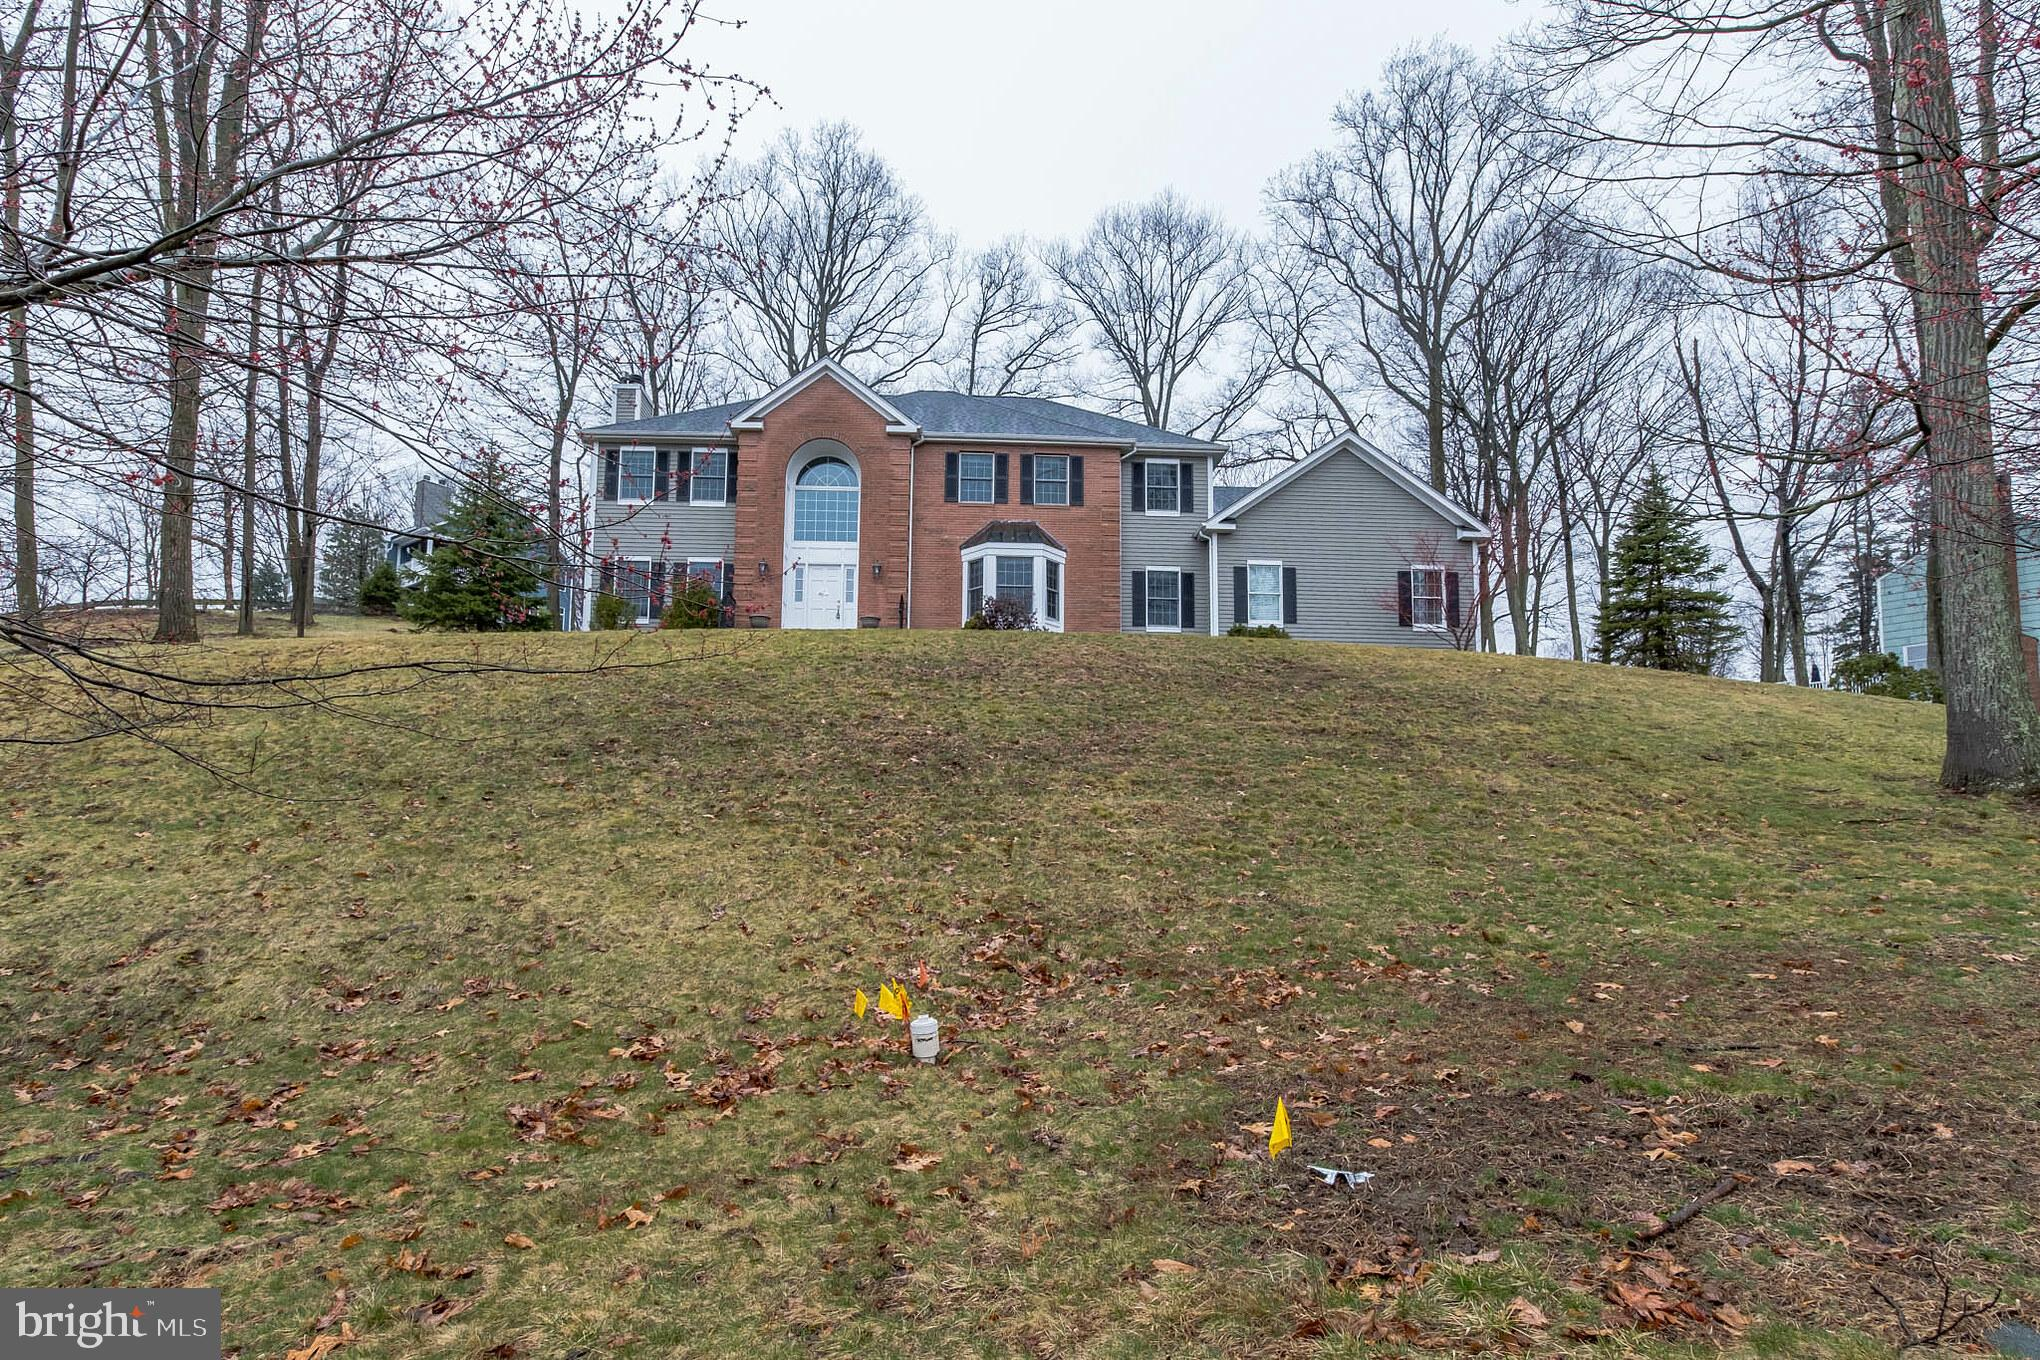 3 FOREST DRIVE, MORRISTOWN, NJ 07960